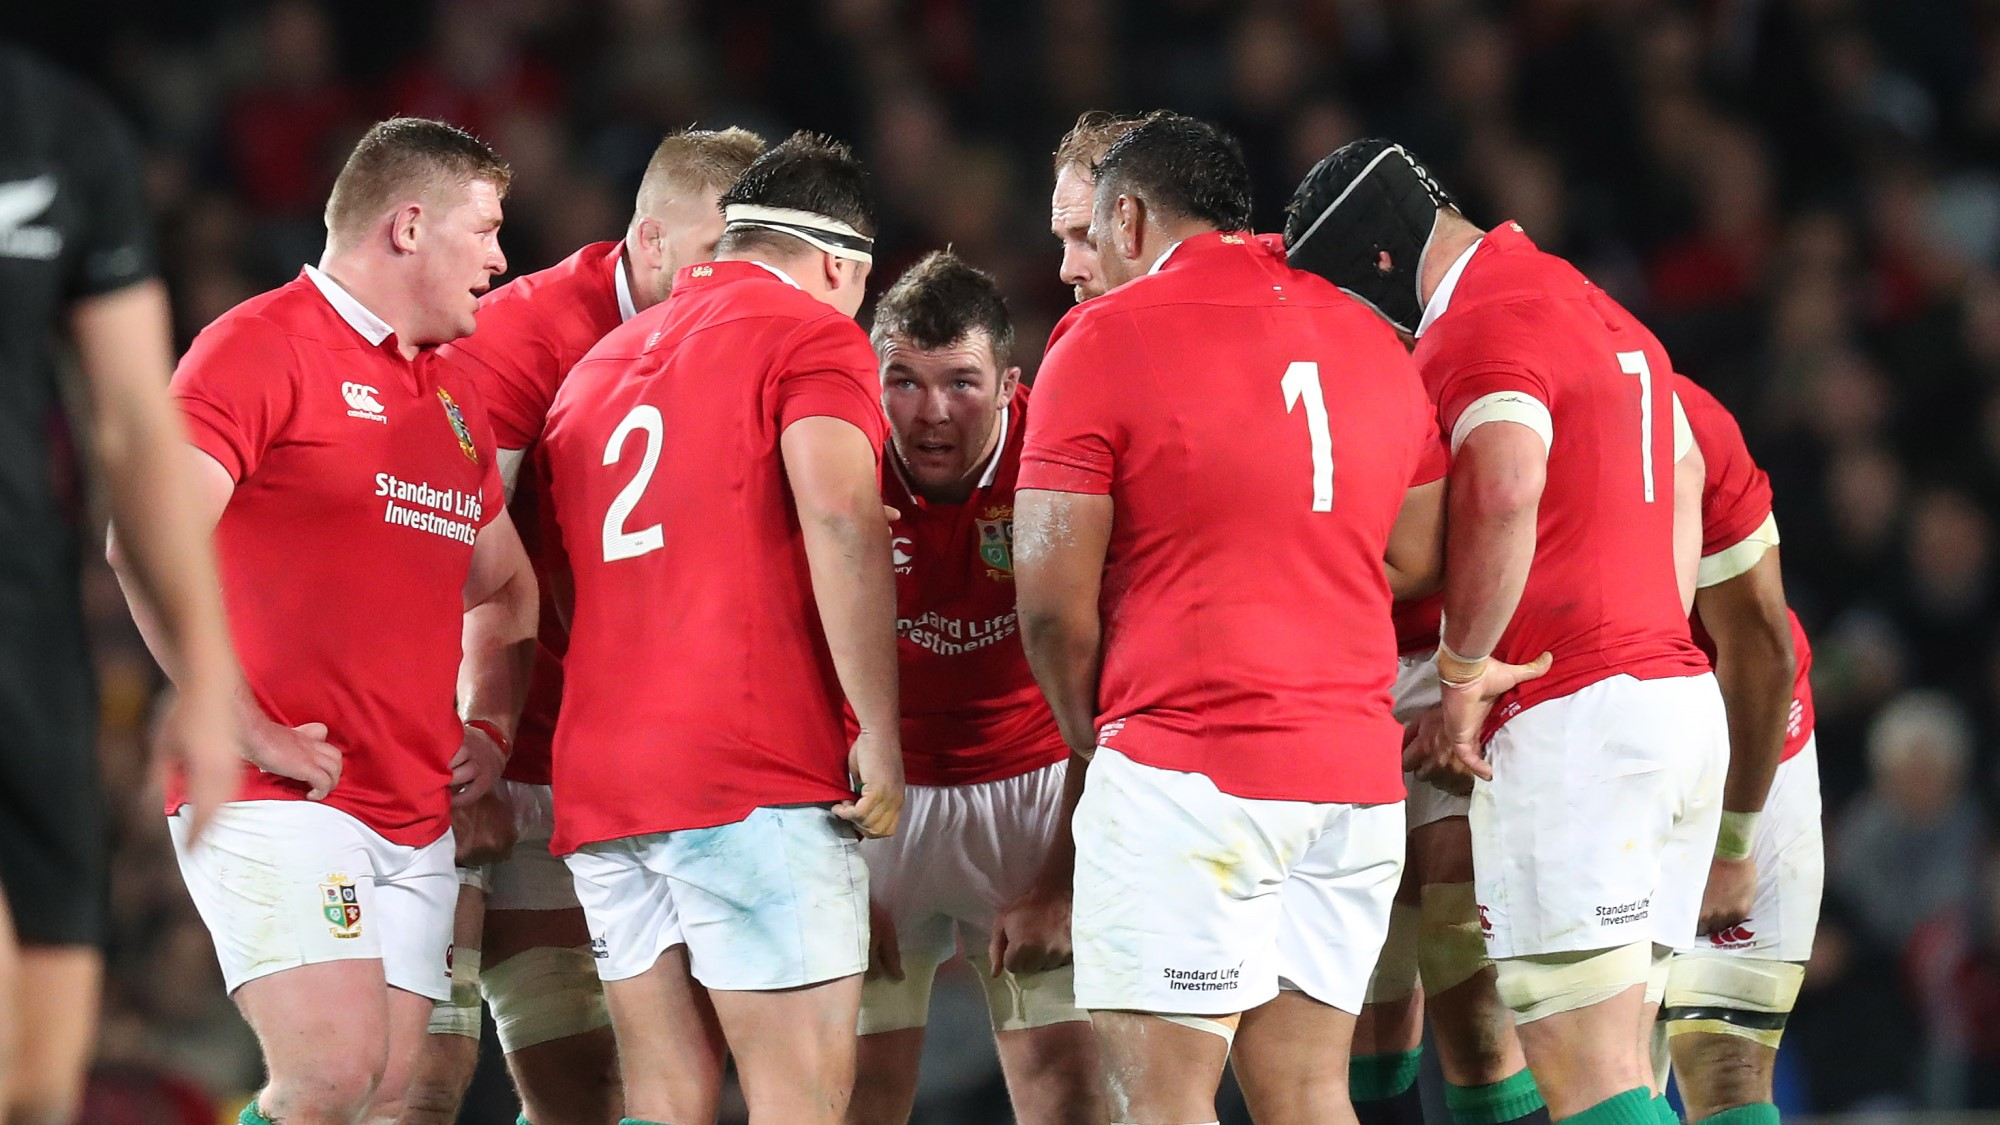 Warburton and Lions looking for response after first Test